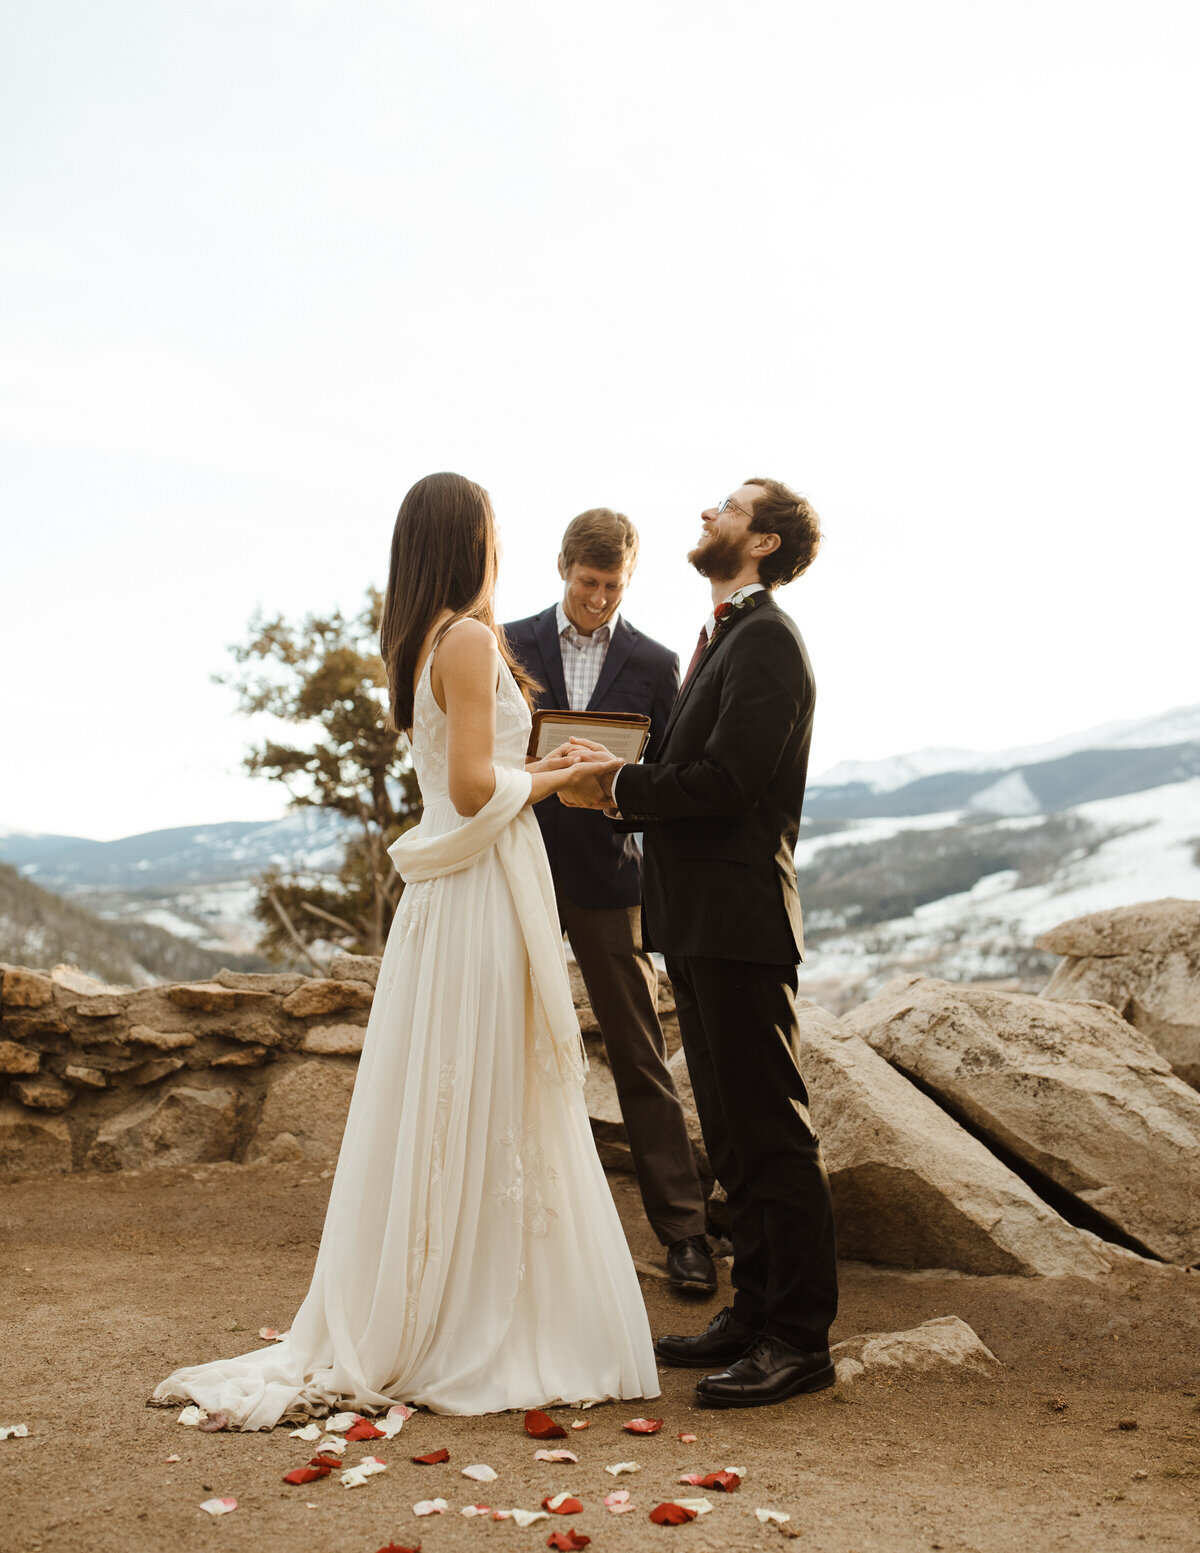 A bride and groom to be holds hands while their wedding happens, with a mountain in the background. There are rose petals on the ground and the groom is laughing, looking upwards